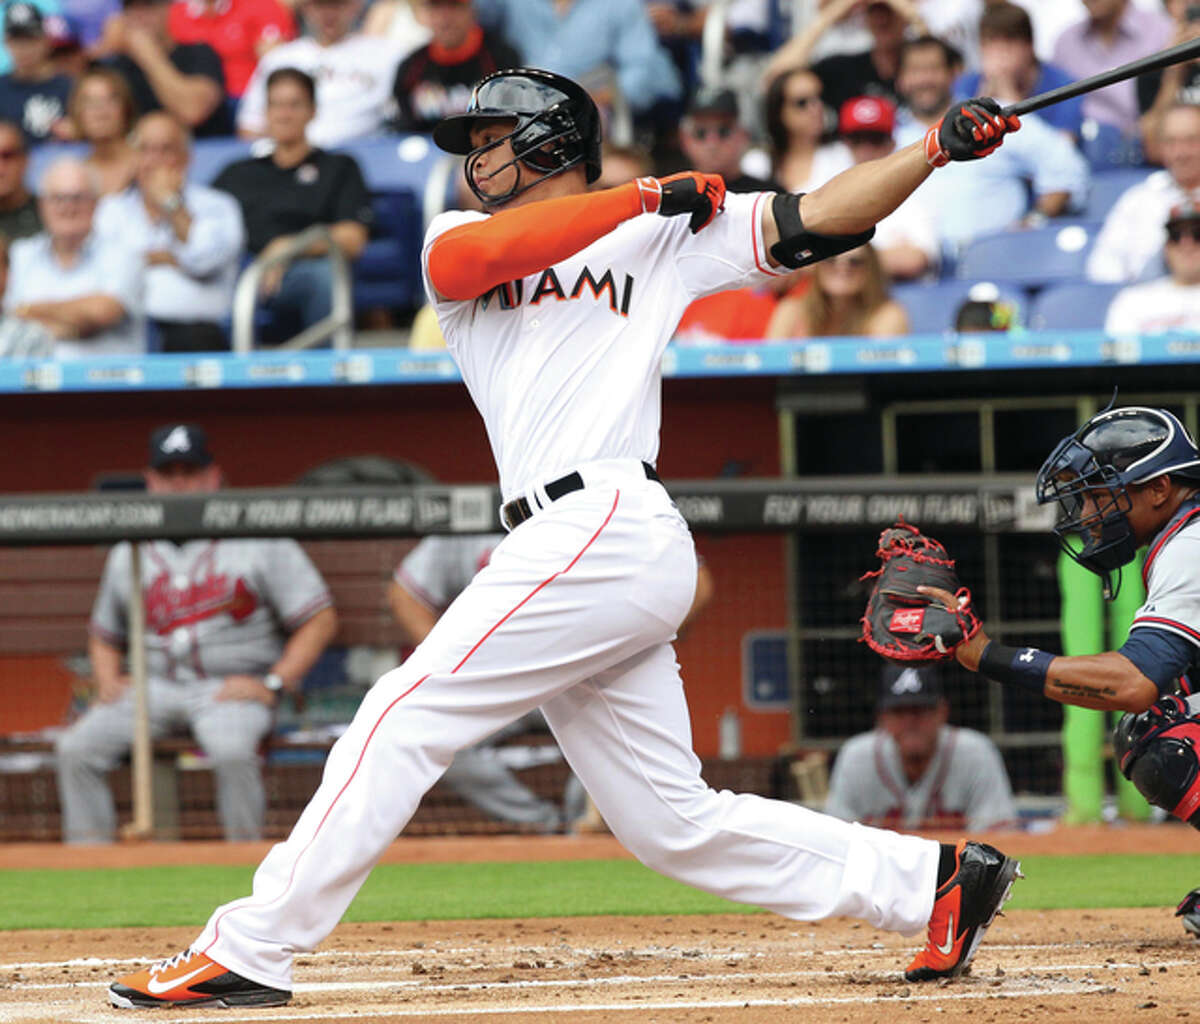 Marlins right fielder Giancarlo Stanton, the reigning National League MVP, Friday declined to waive his no-trade clause that would have finalized a trade sending him to the Cardinals.